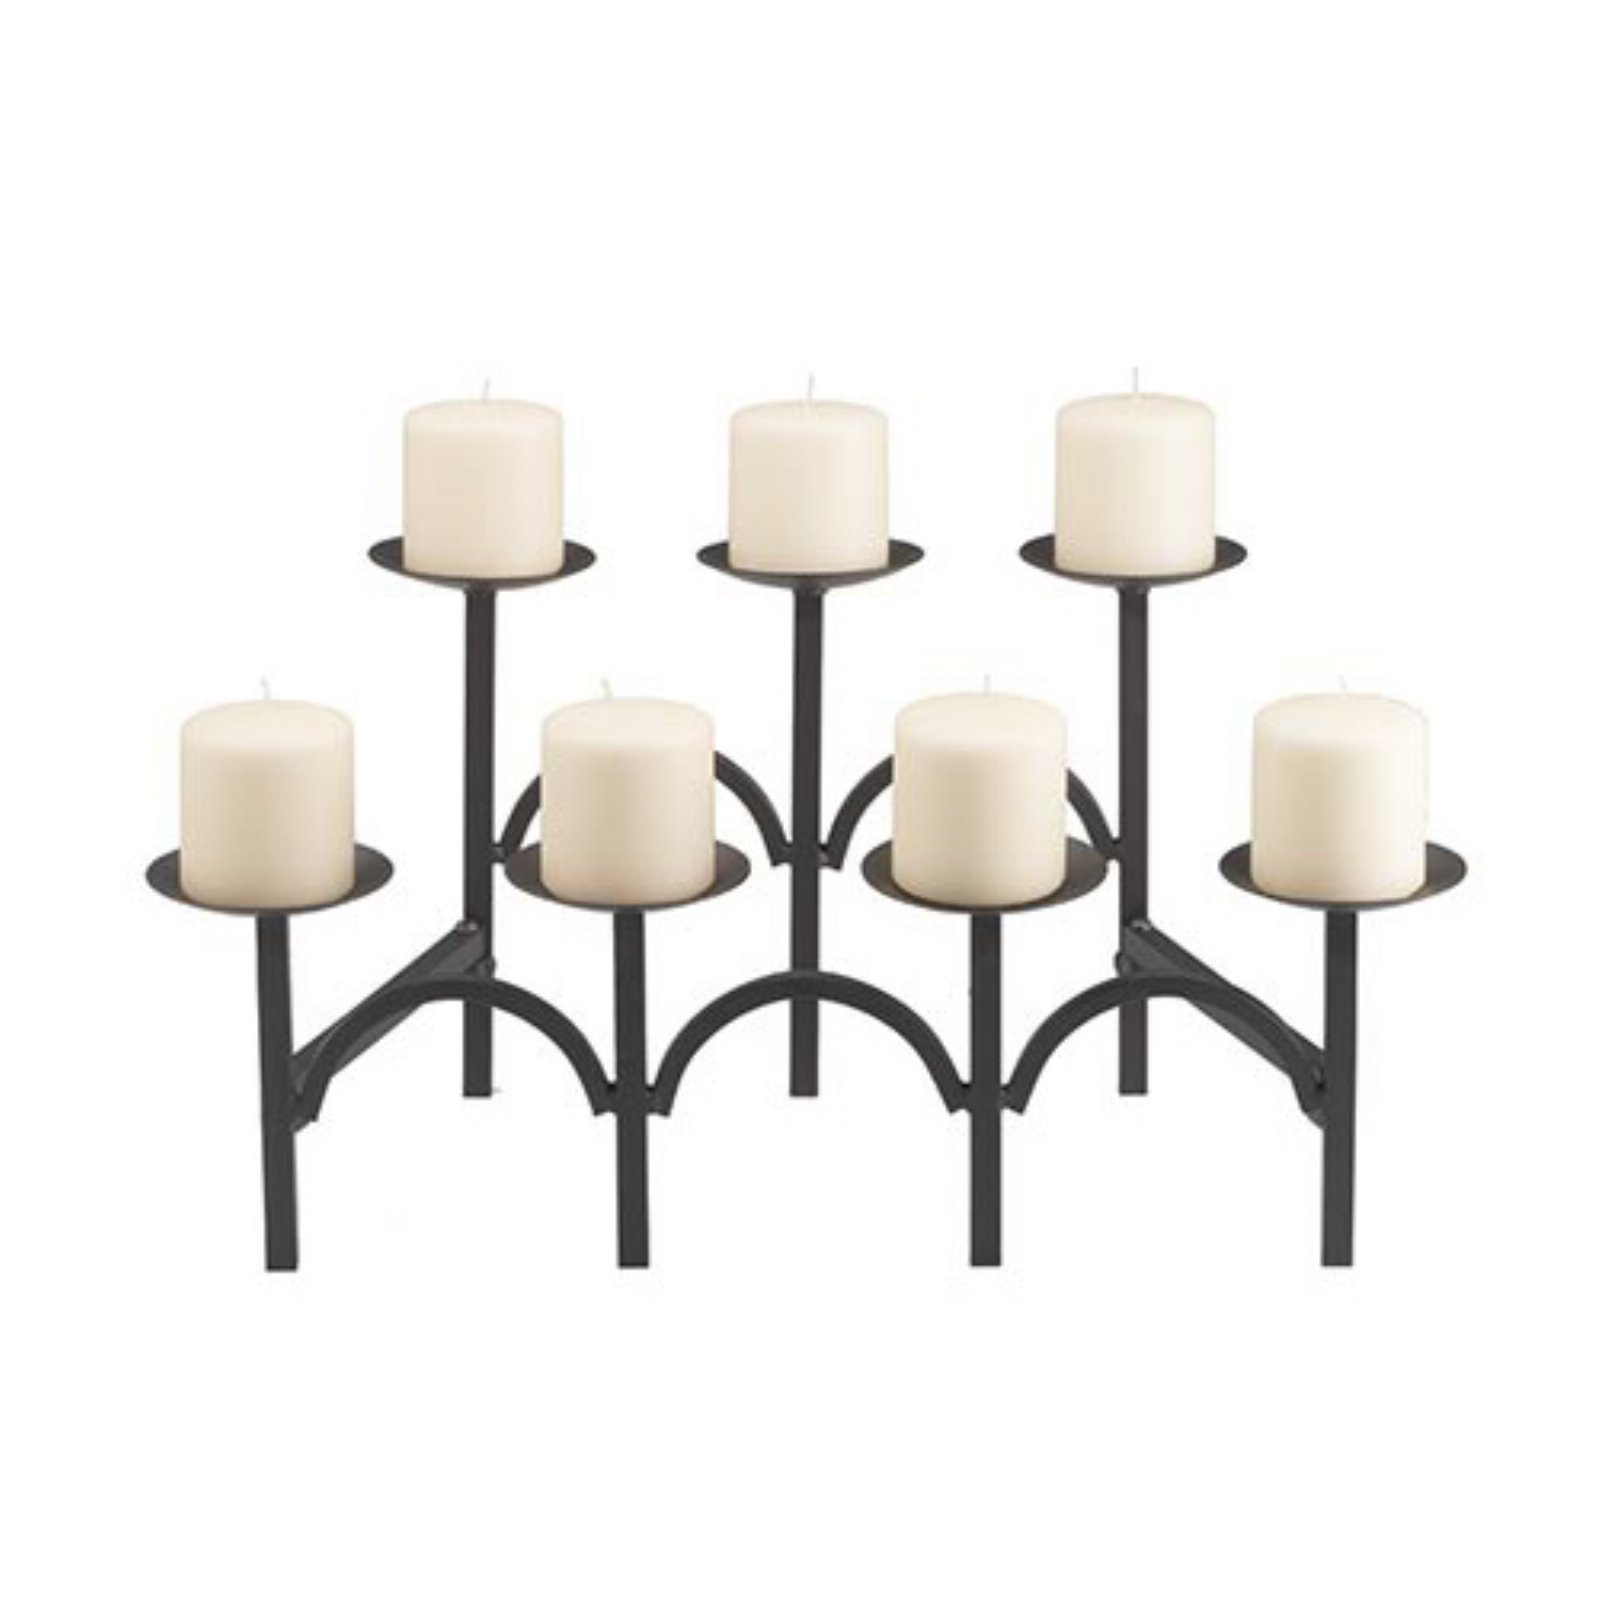 Minuteman International Two Tier 7 Candle Black Fireplace Candelabra